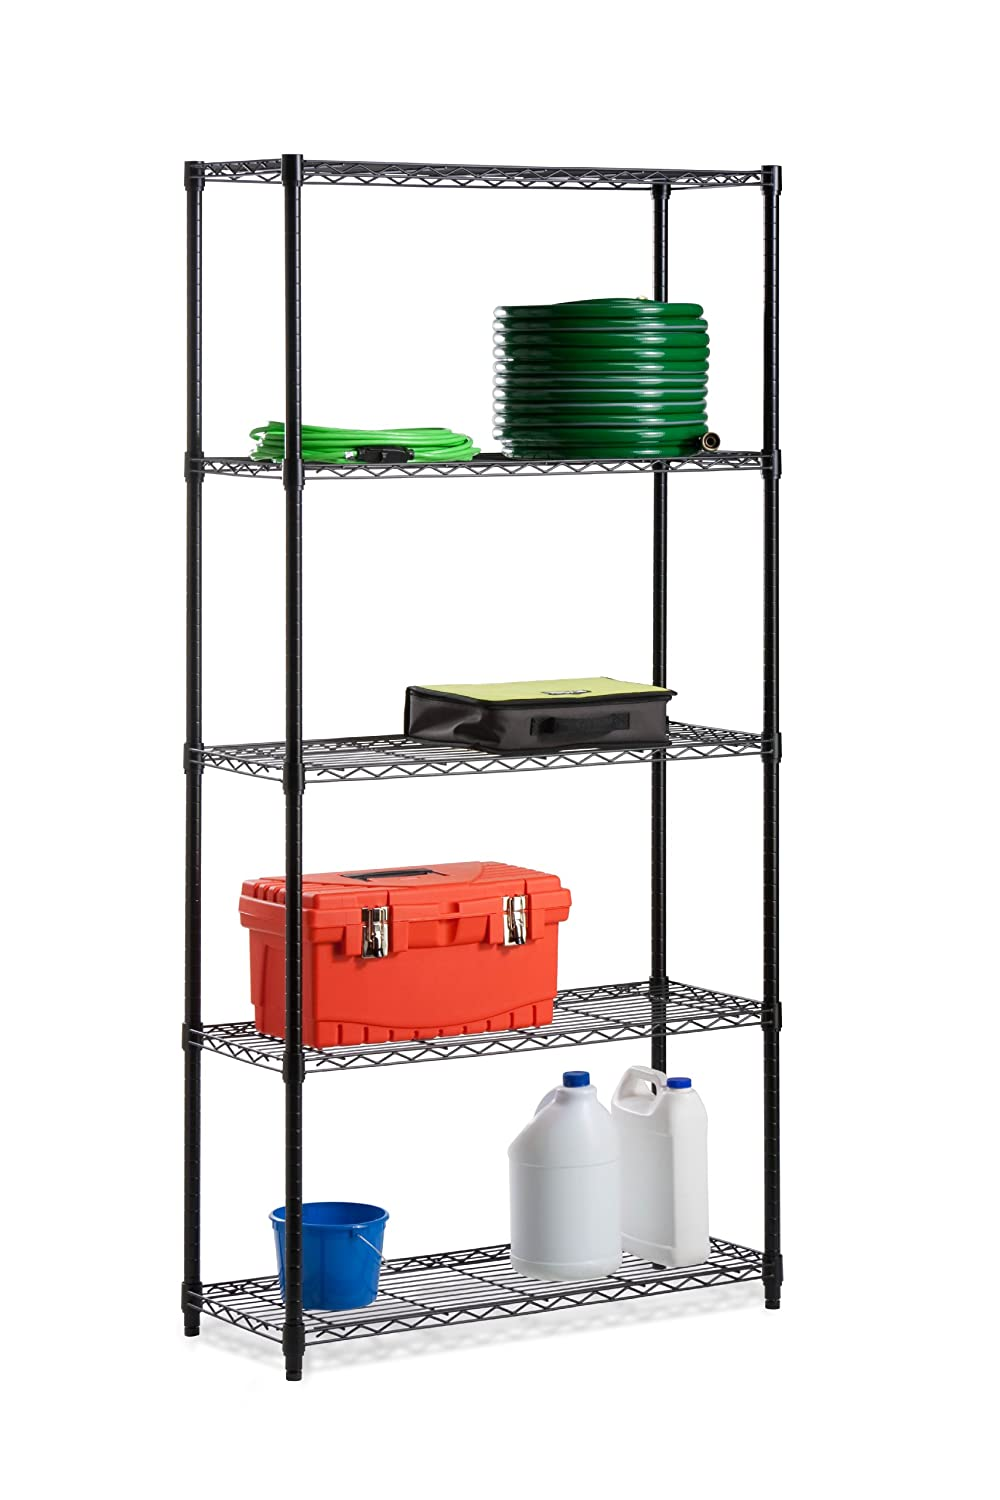 Amazon.com: Honey-Can-Do SHF-01442 Adjustable Industrial Storage ...